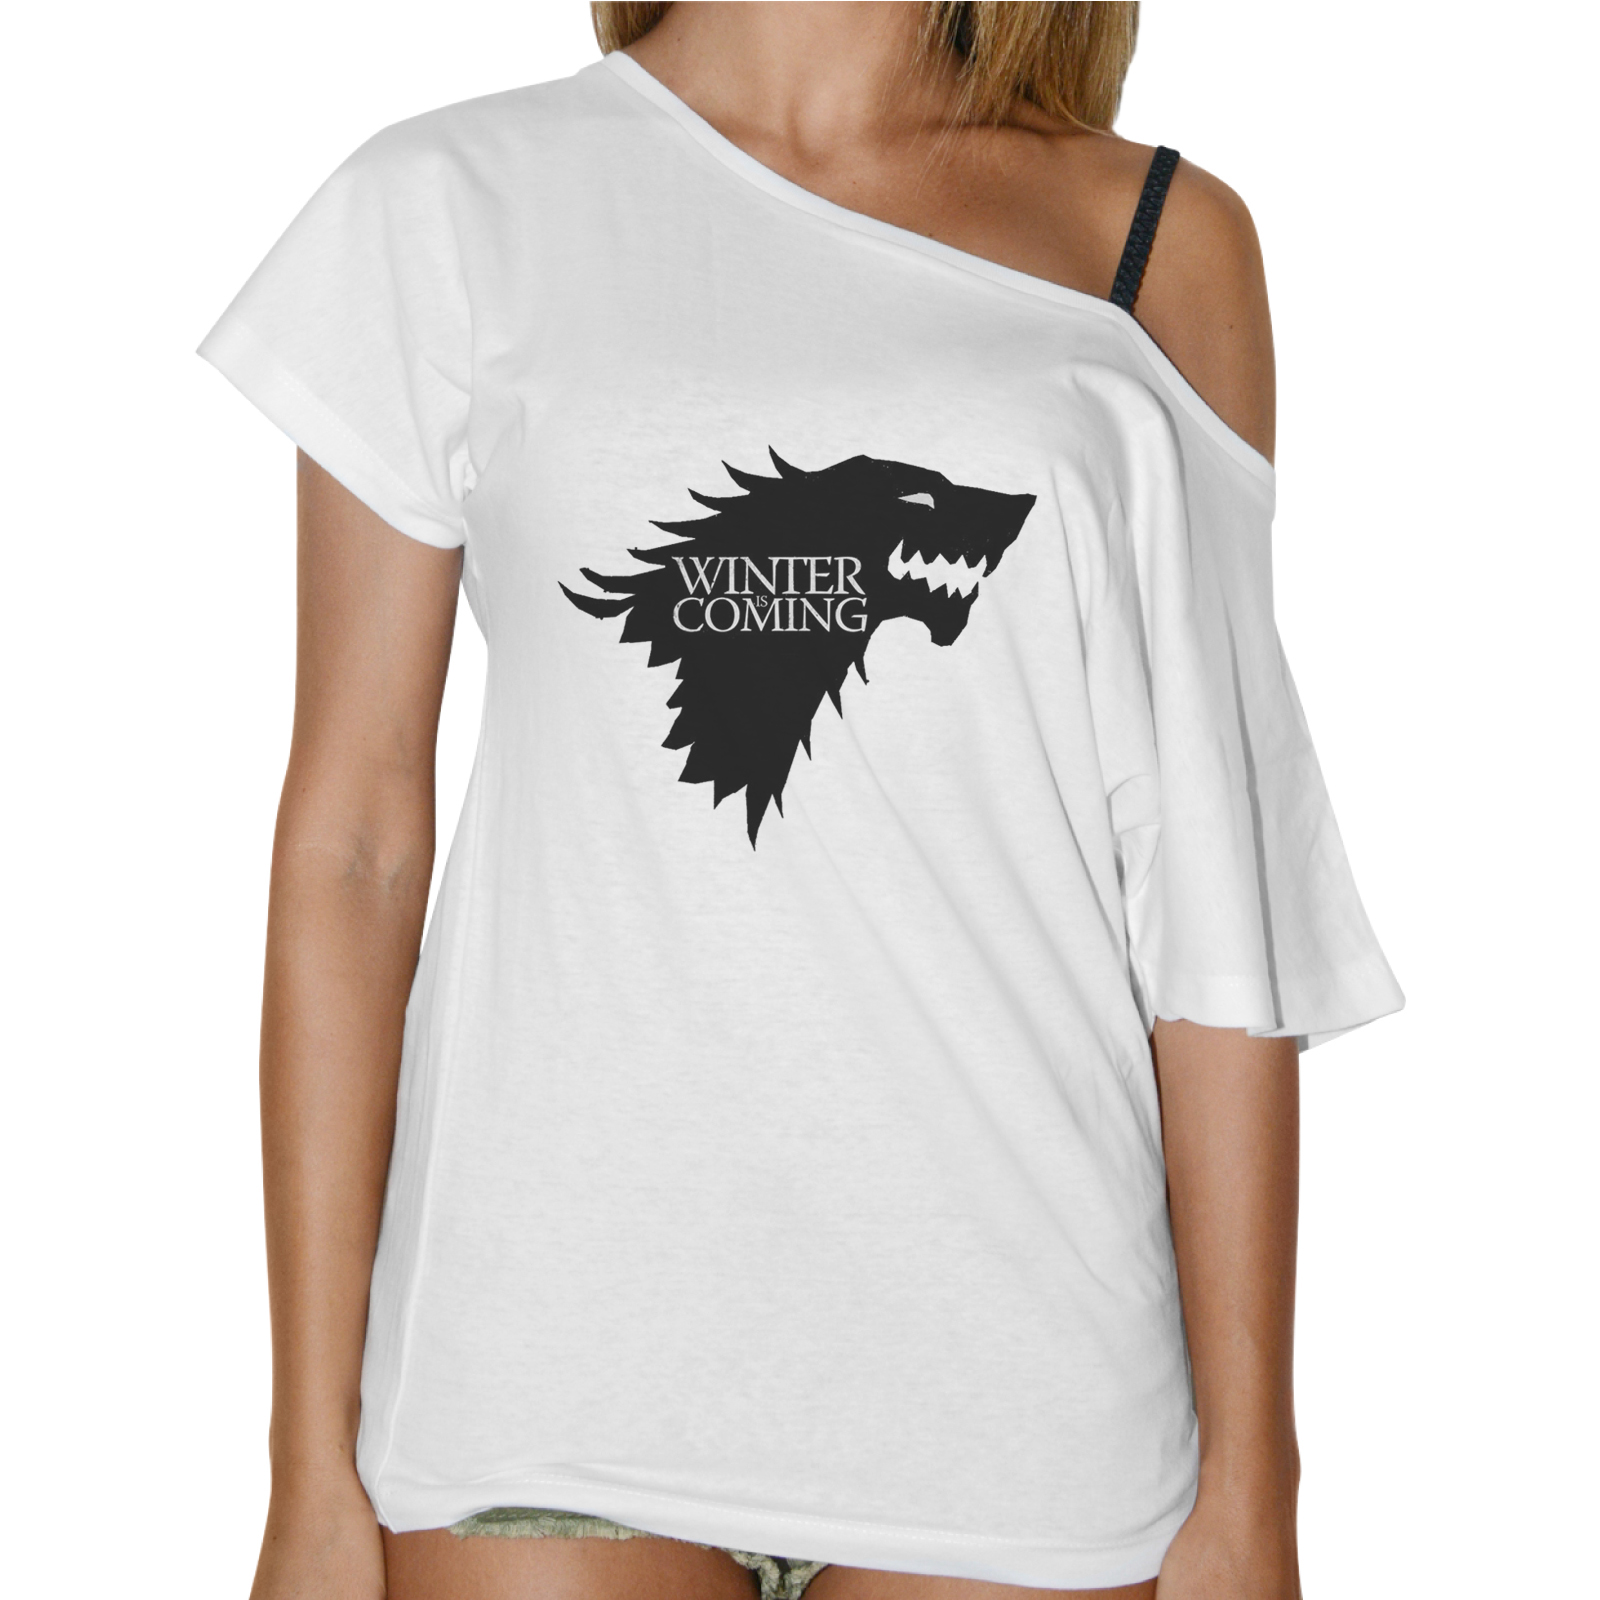 T-Shirt Donna Collo Barca WINTER IS COMING